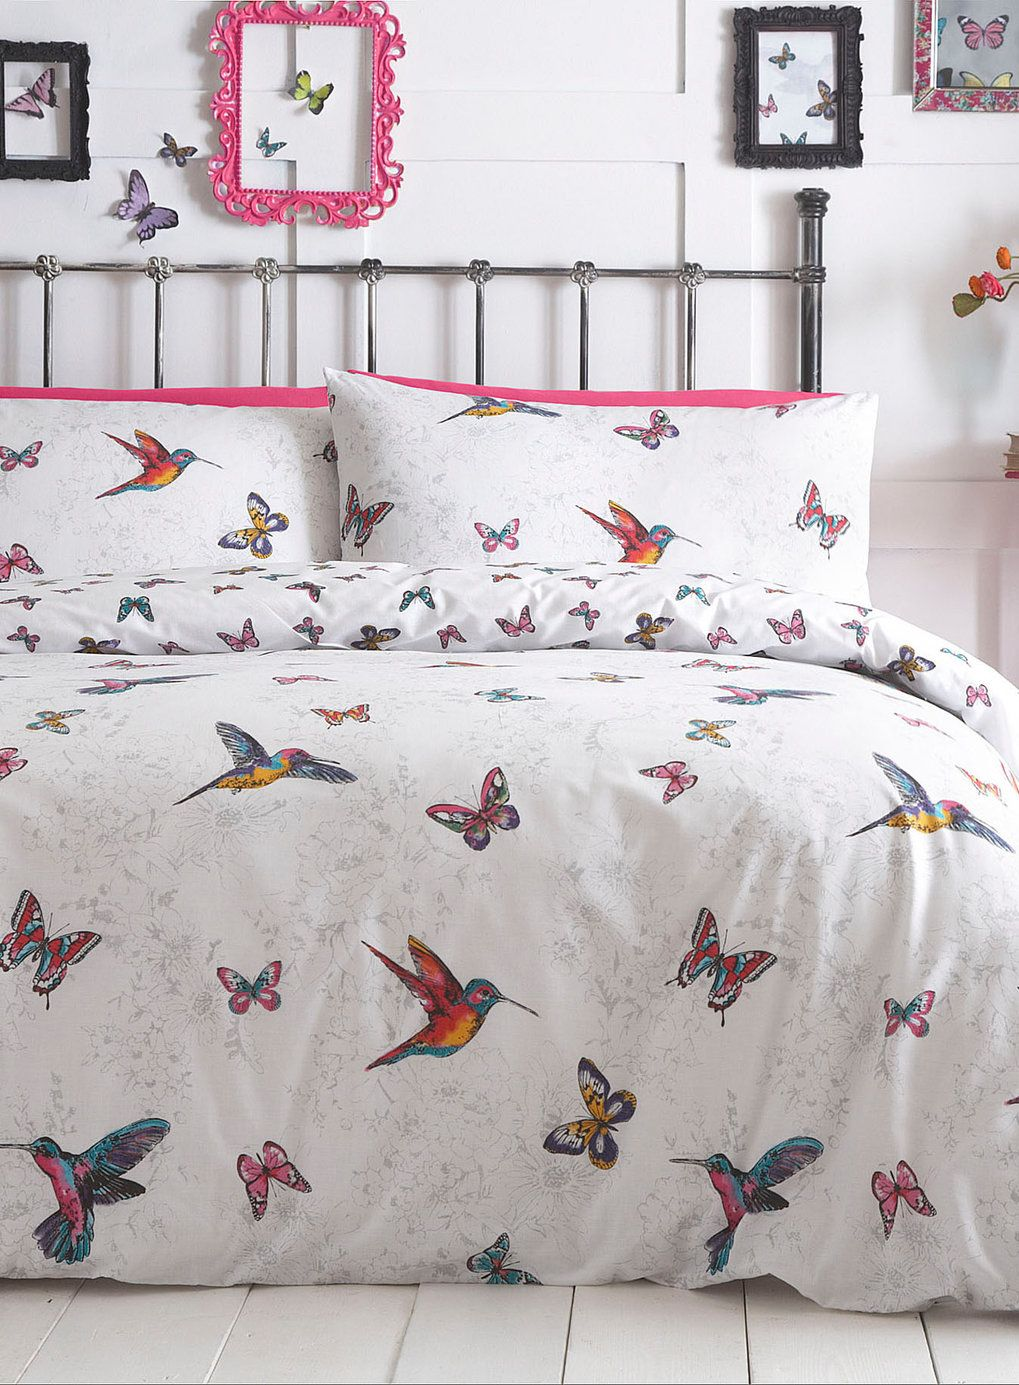 Delightful Hummingbird Bed Linen Part - 1: Hummingbird Bedding Set - Bedding Sets U0026 Sheets - Home, Lighting U0026  Furniture - BHS